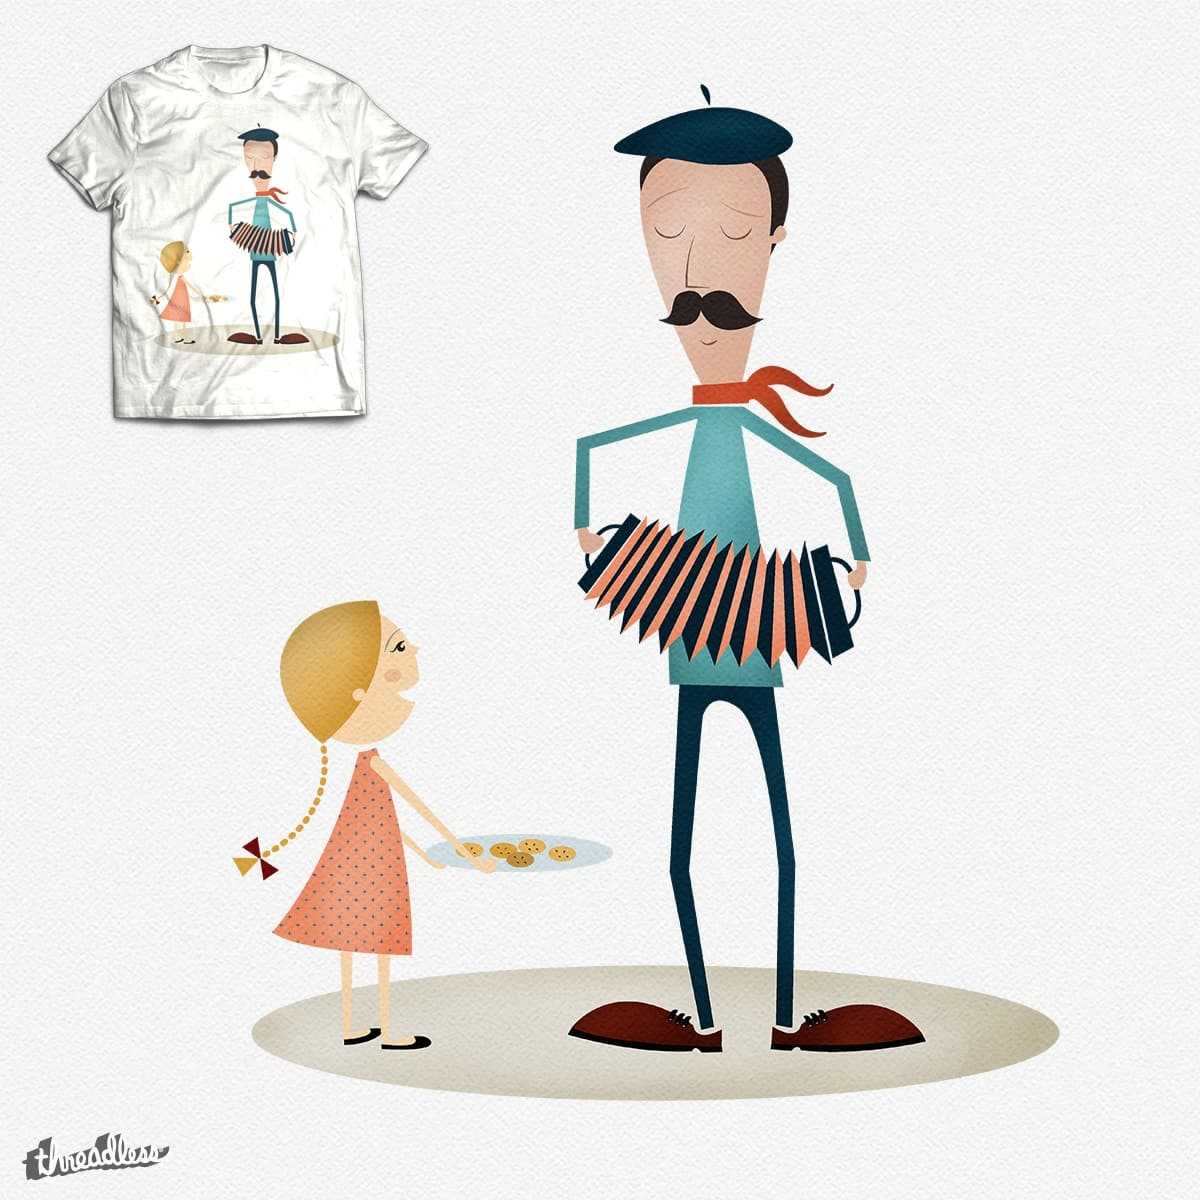 The frenchman and the biscuit by TRSC on Threadless